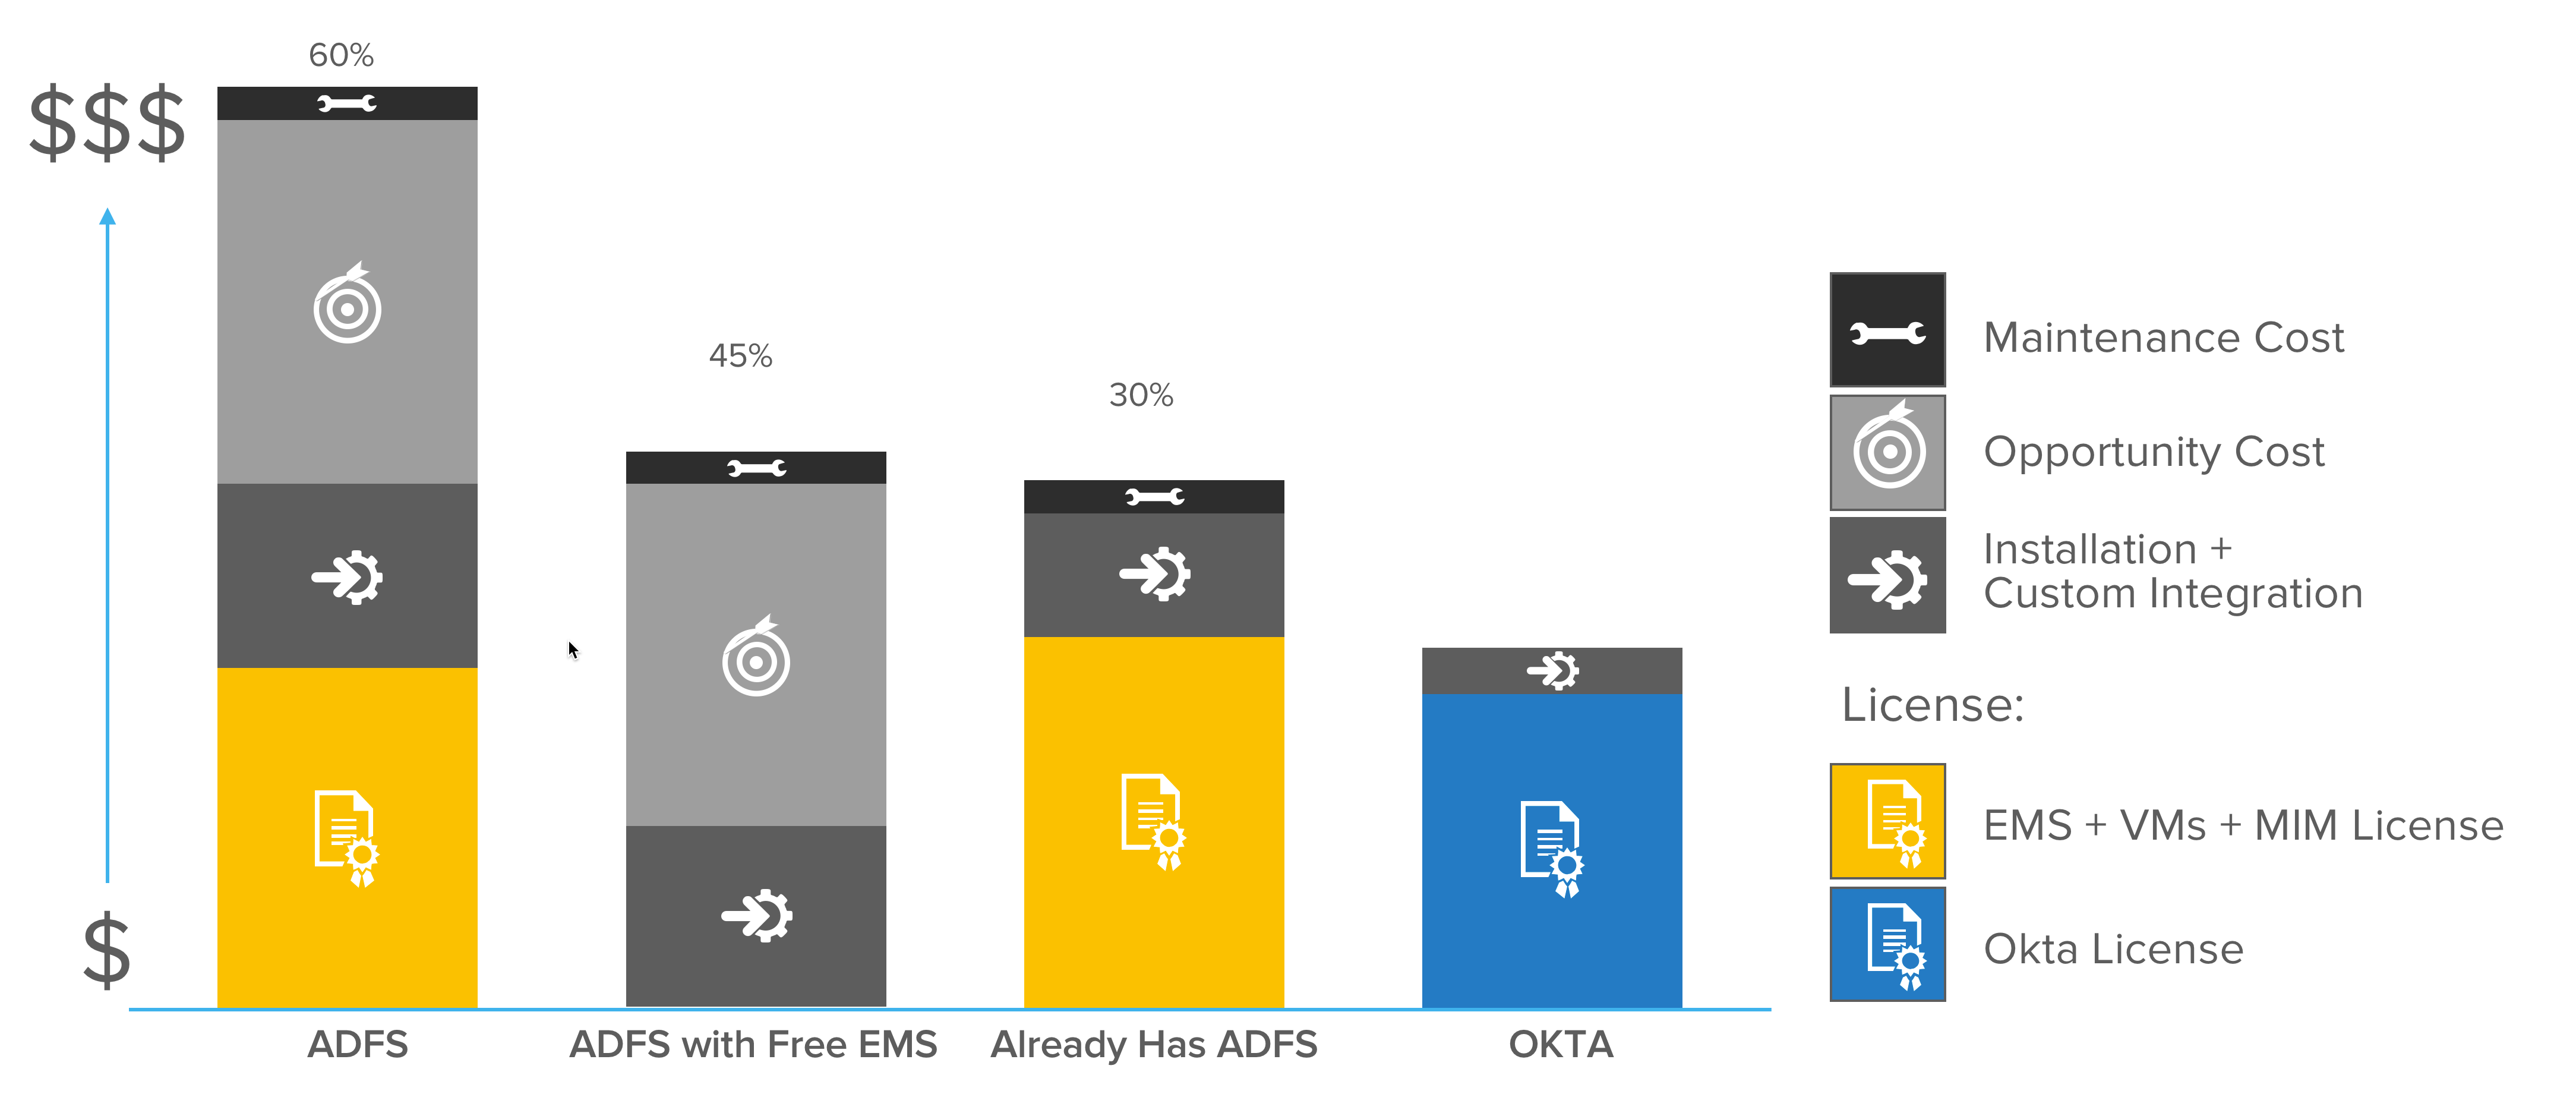 Okta is not only the most affordable identity solution, but comes with low maintenance and certification training.